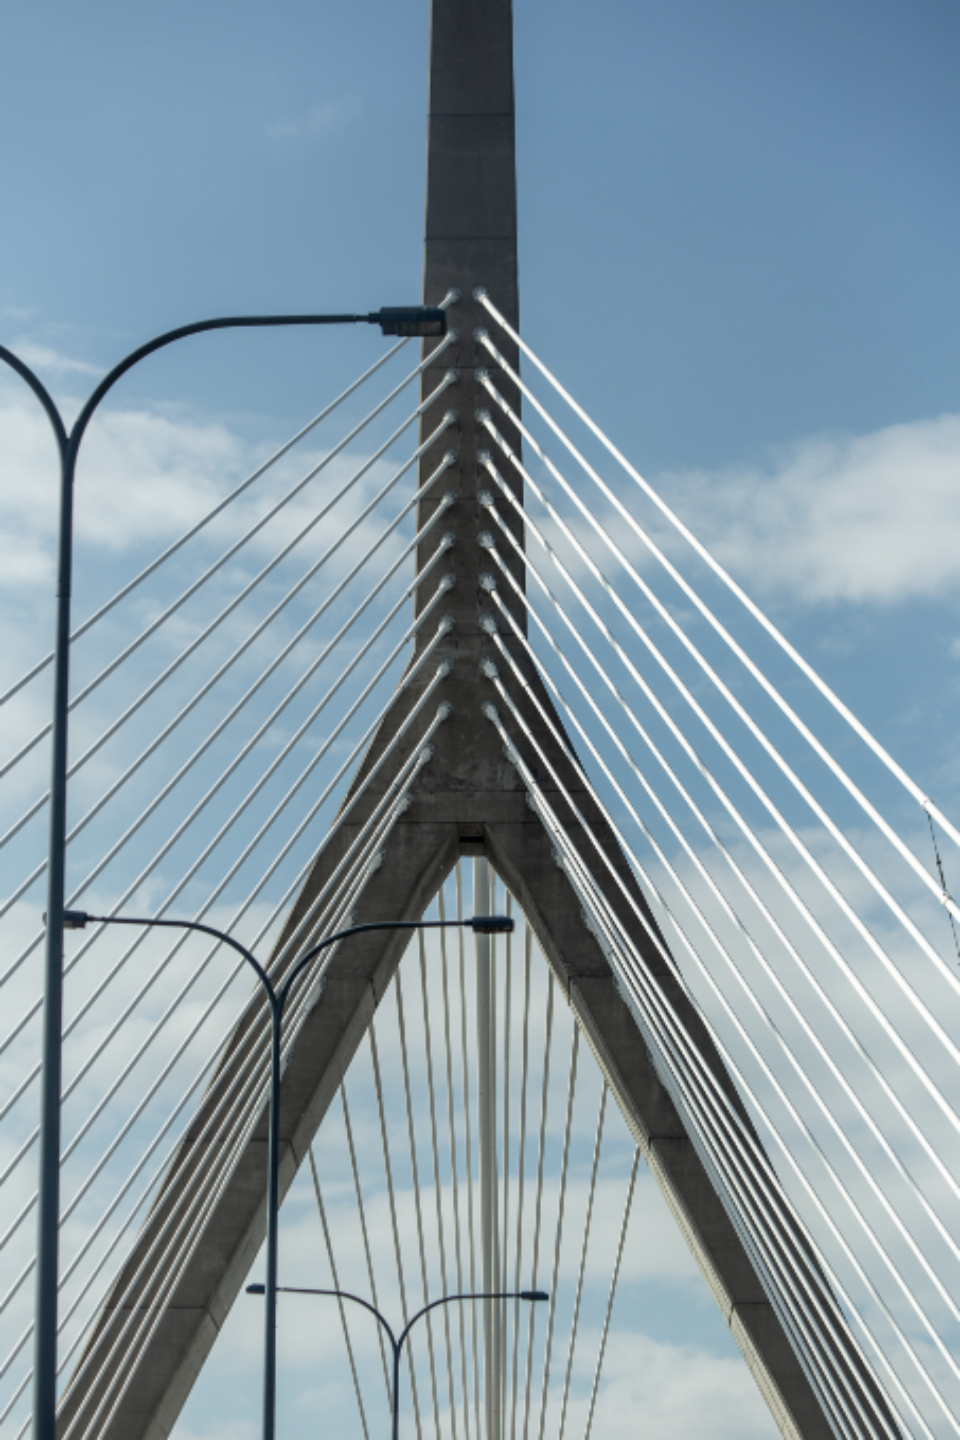 bridge abstract city angle architecture structure modern cable lines tower sky clouds design travel street lights